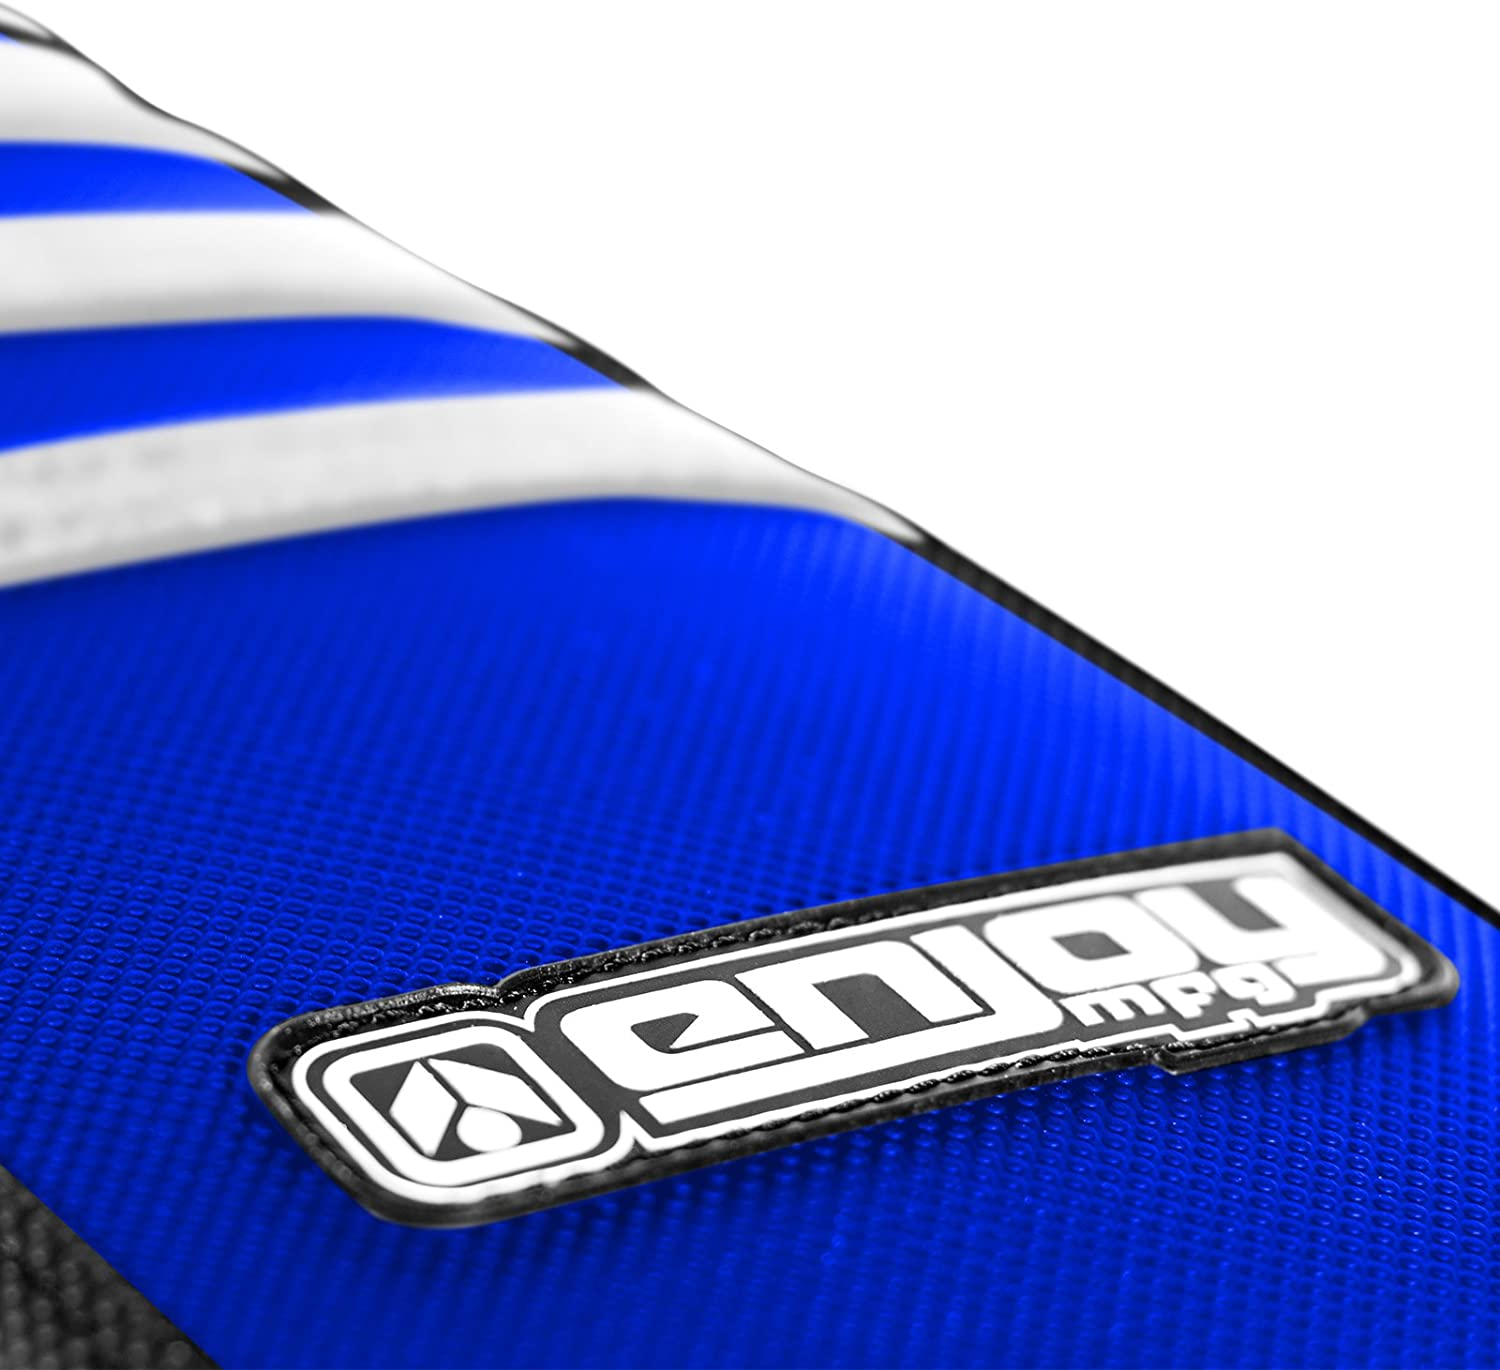 Enjoy MFG 2006-2013 Yamaha WR 250 F Black Sides Blue Top White Ribs Seat Cover